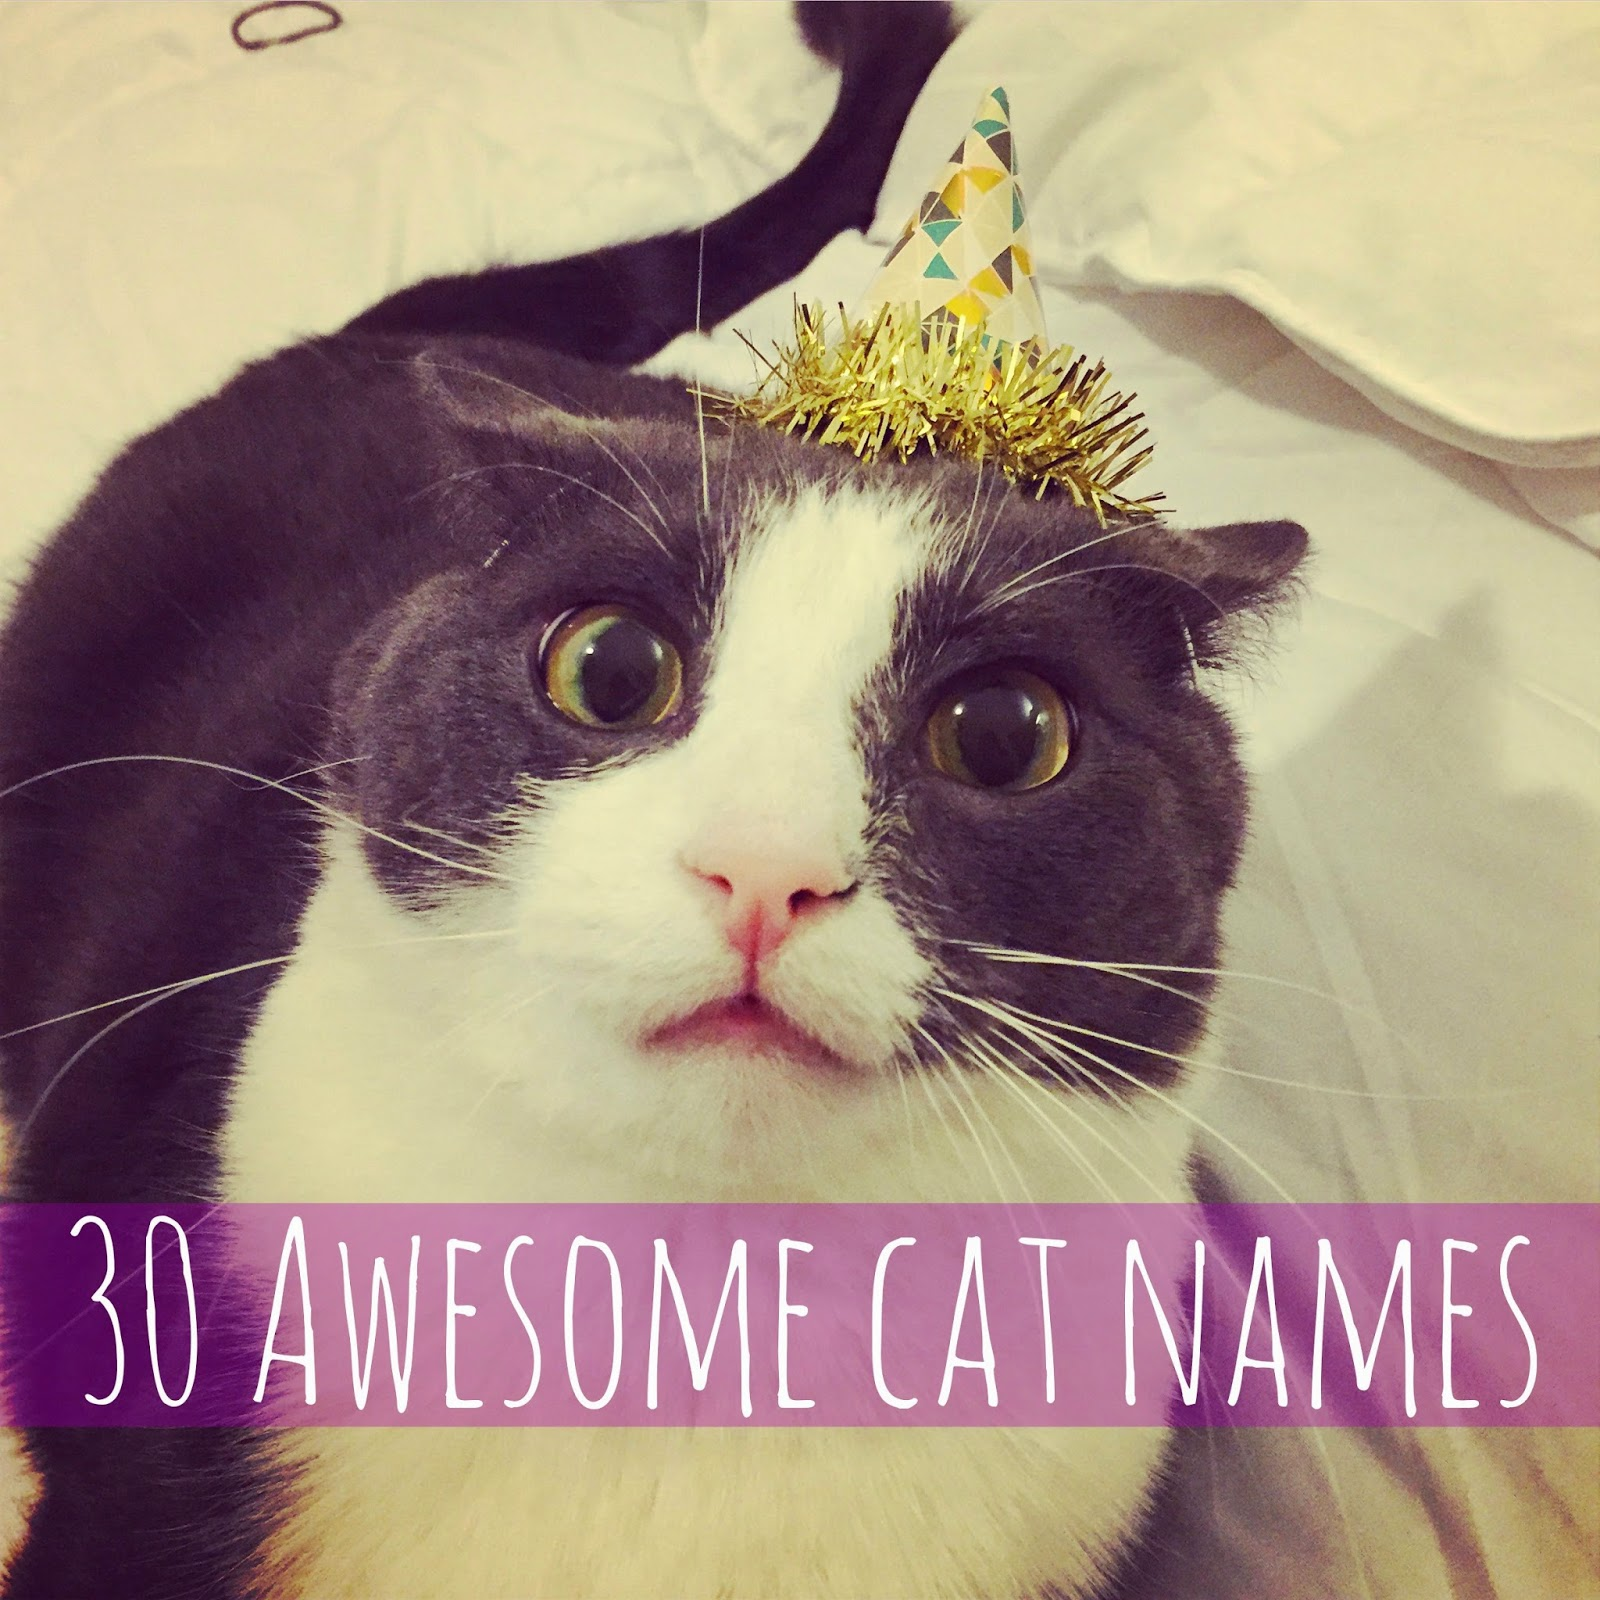 List Of Awesome Cat Names